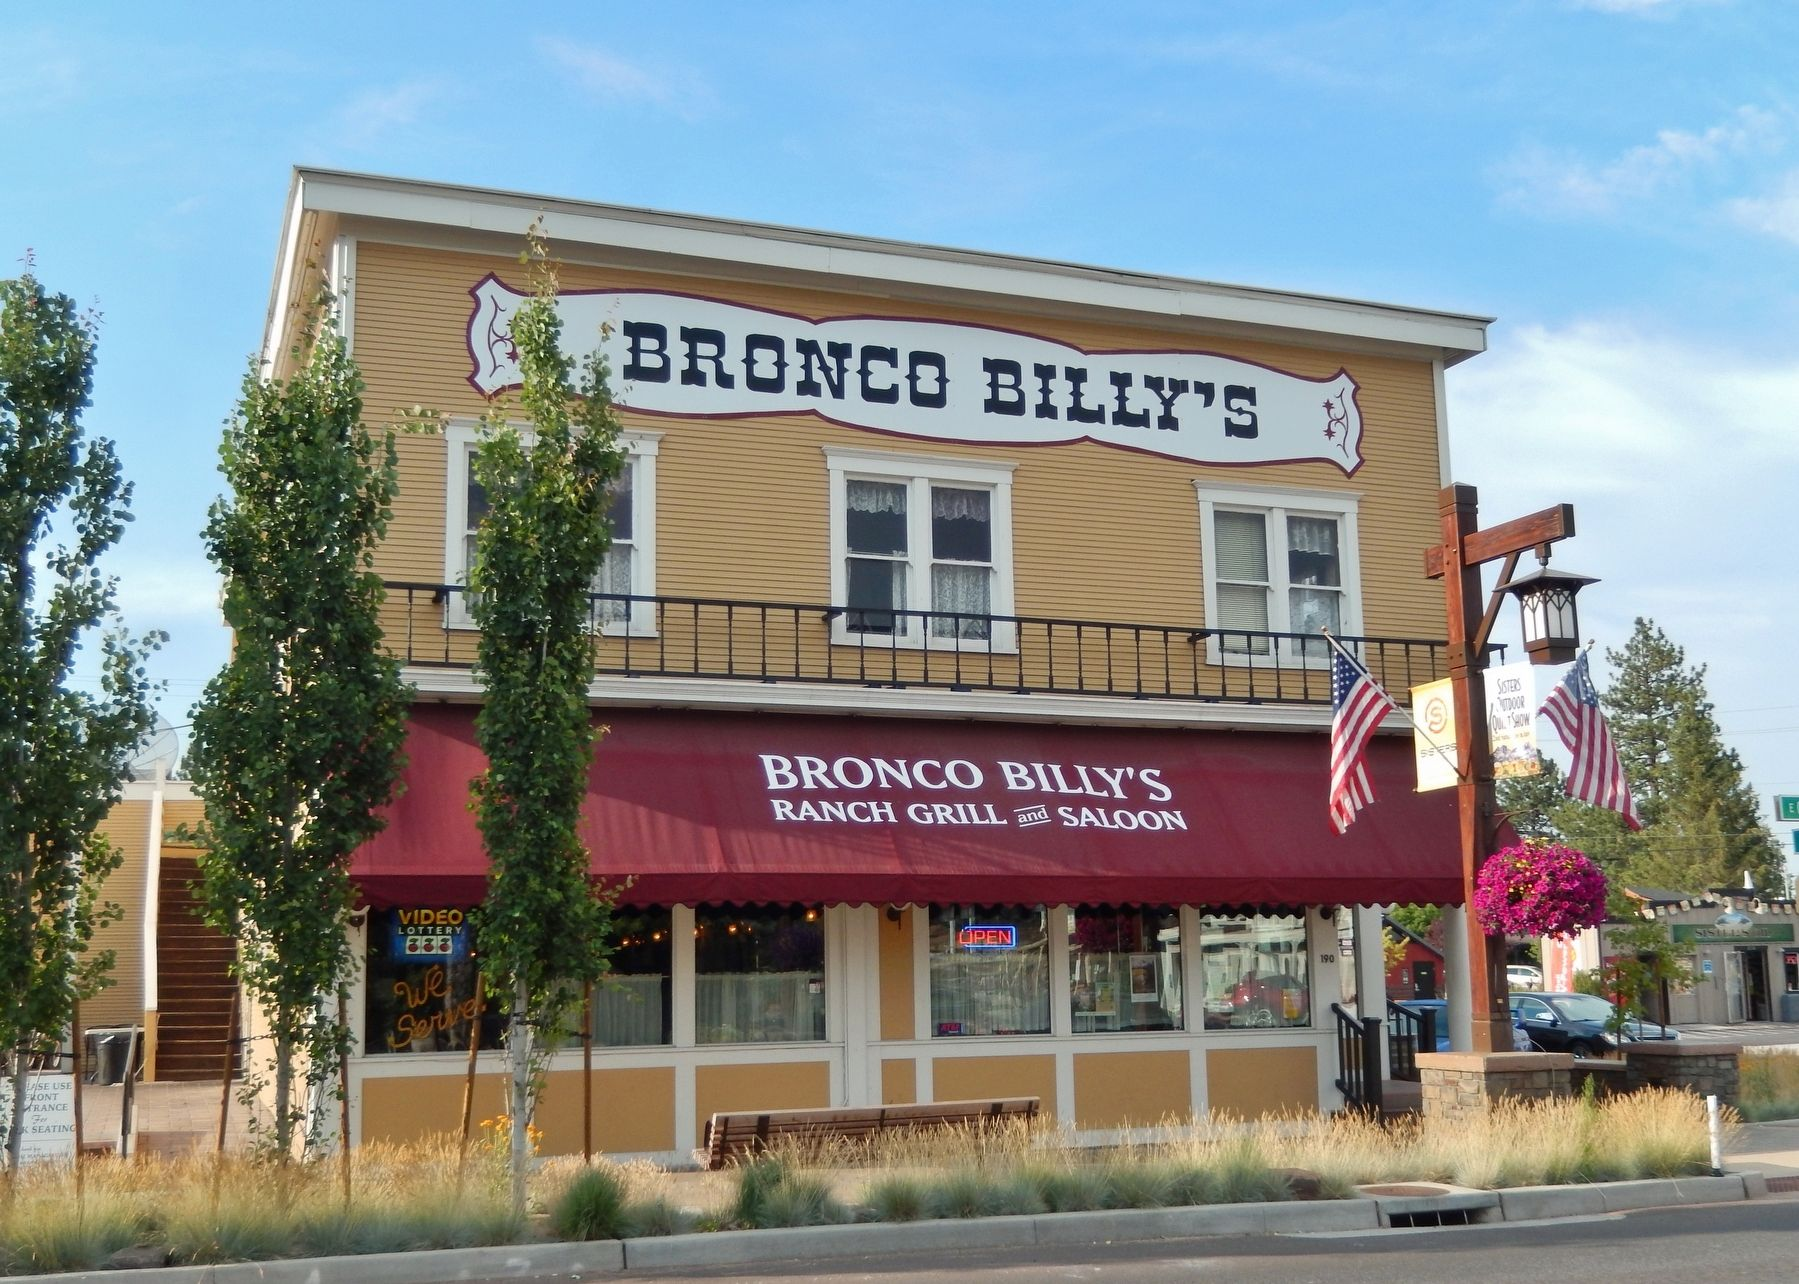 Bronco Billy's Ranch Grill (formerly Hotel Sisters) image. Click for full size.